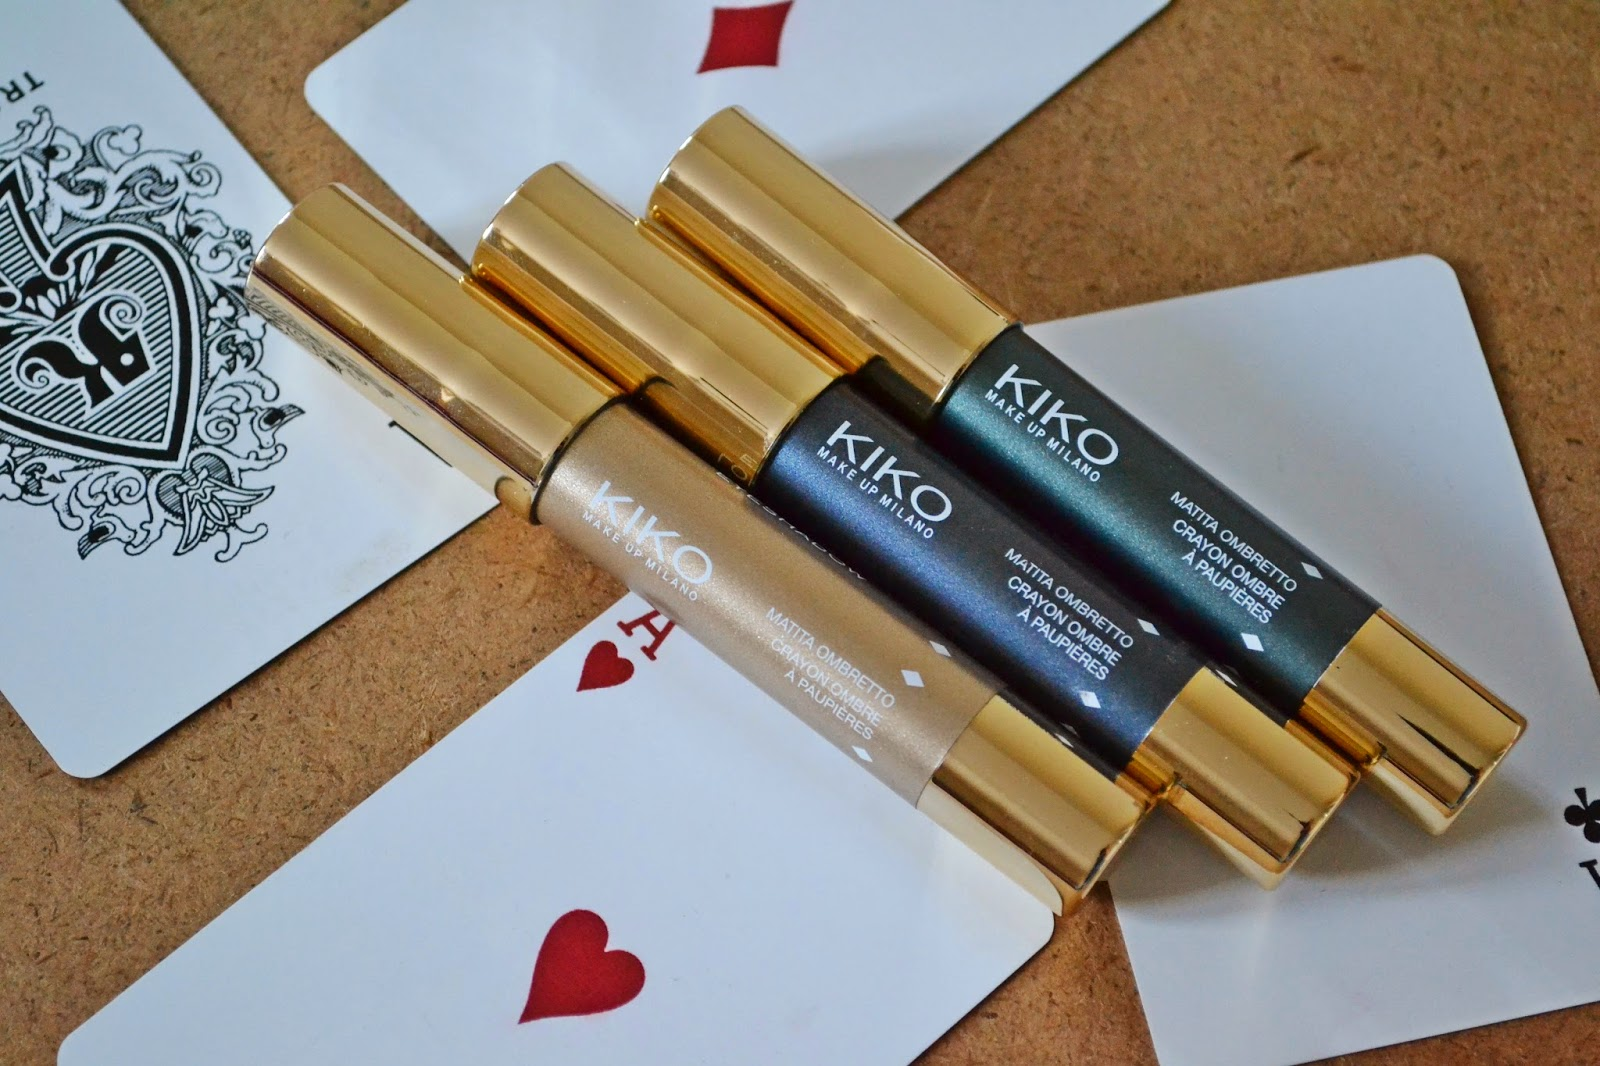 Kiko Milano Color-Up Long Lasting Eyeshadow Pencils in 28 Persuasive Anthracite, 11 Charming Champagne & 29 Irresistable Teal - Aspiring Londoner